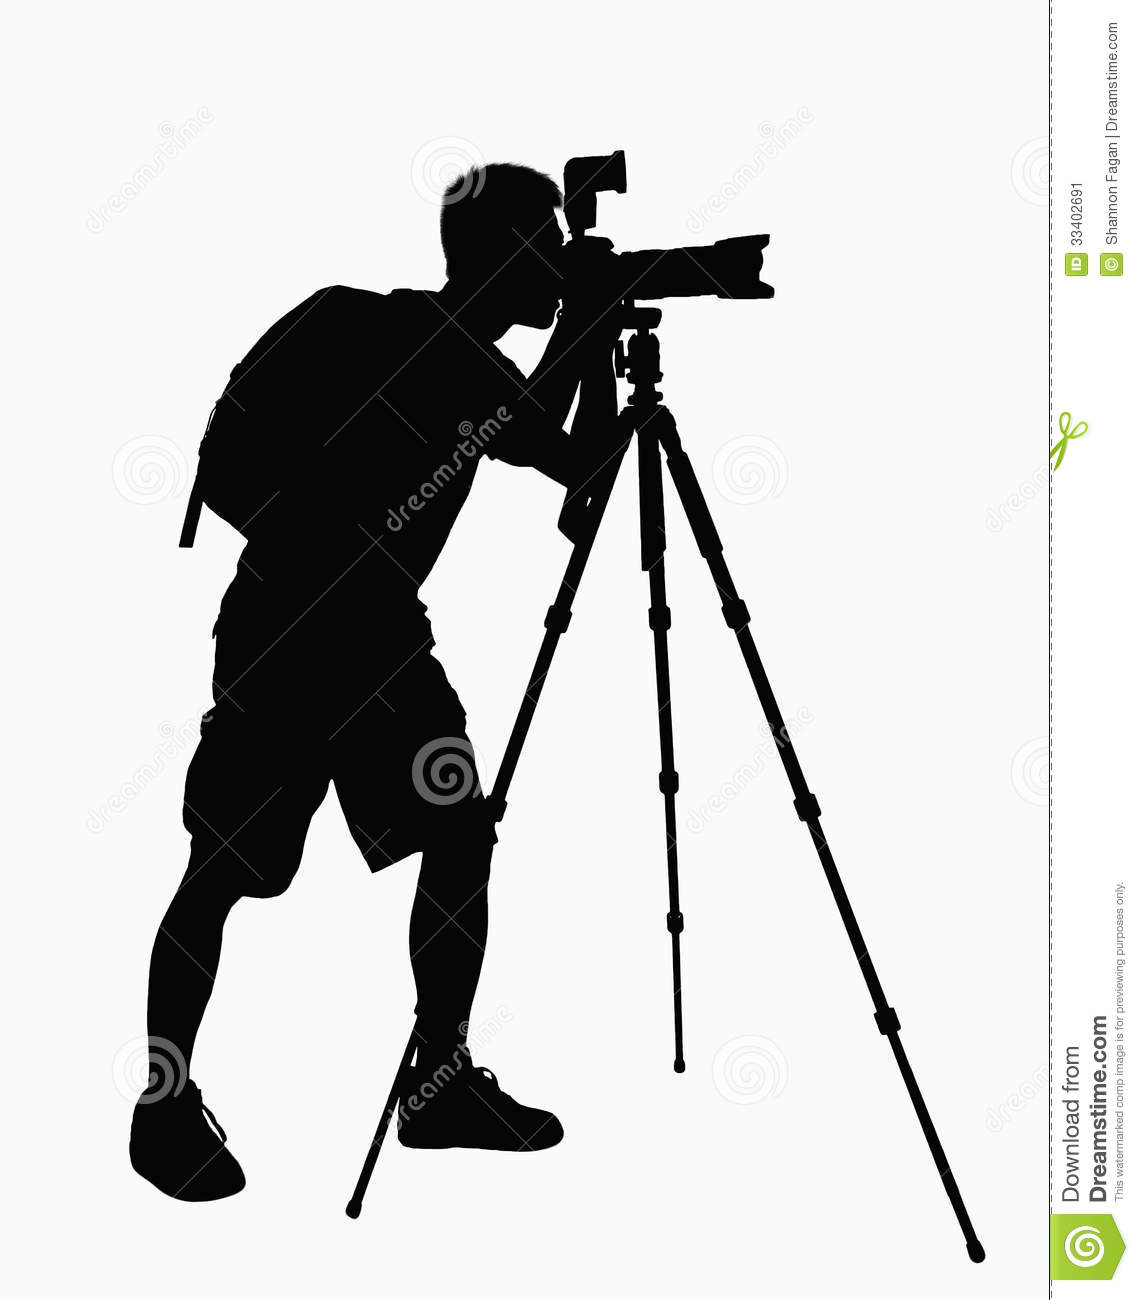 Camera stand clipart - Clipground